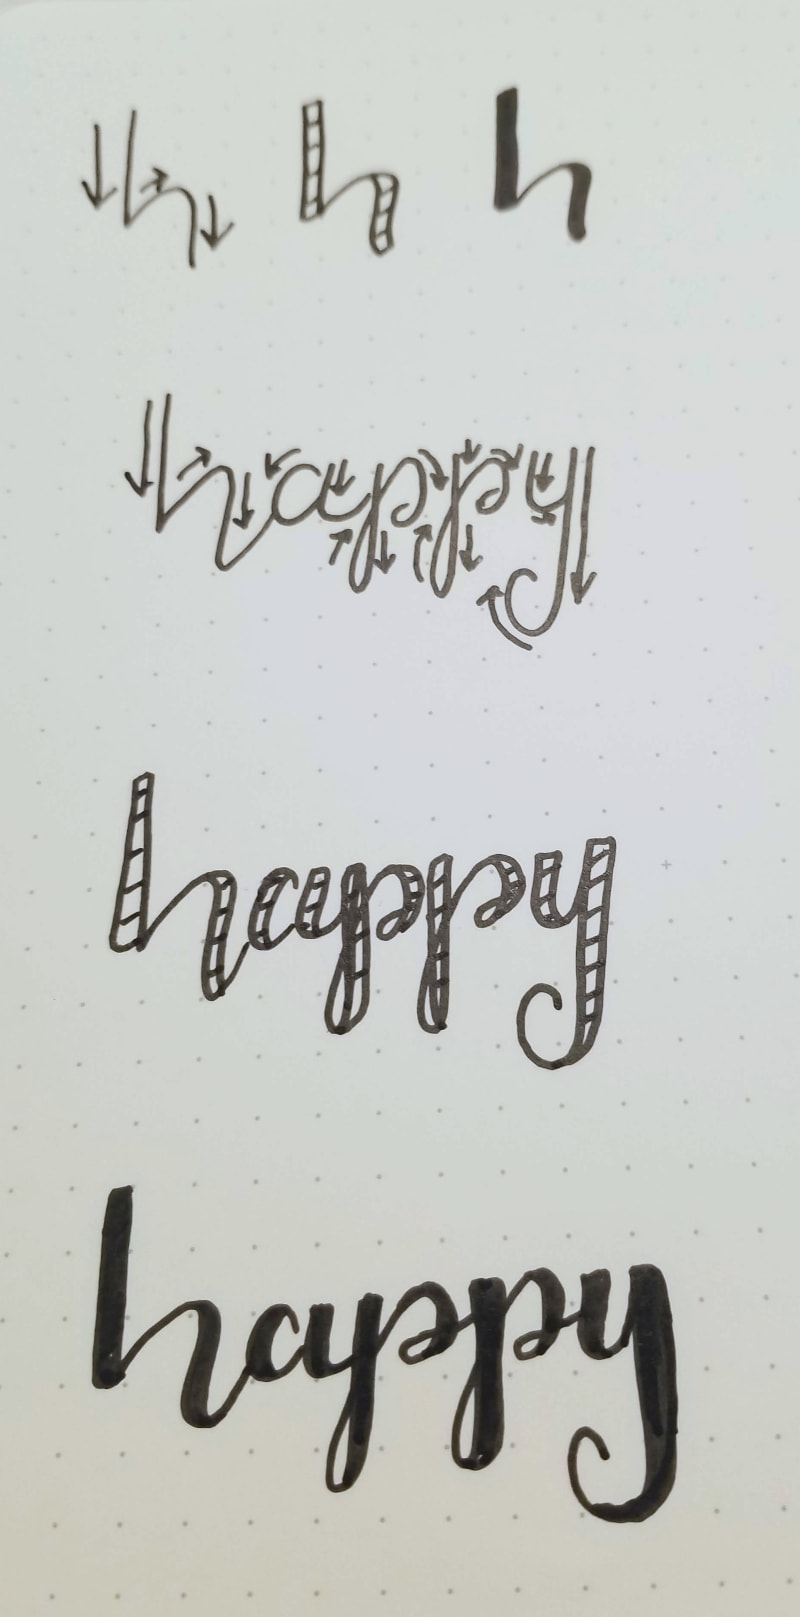 How to write happy with micron fineliner in brush lettering